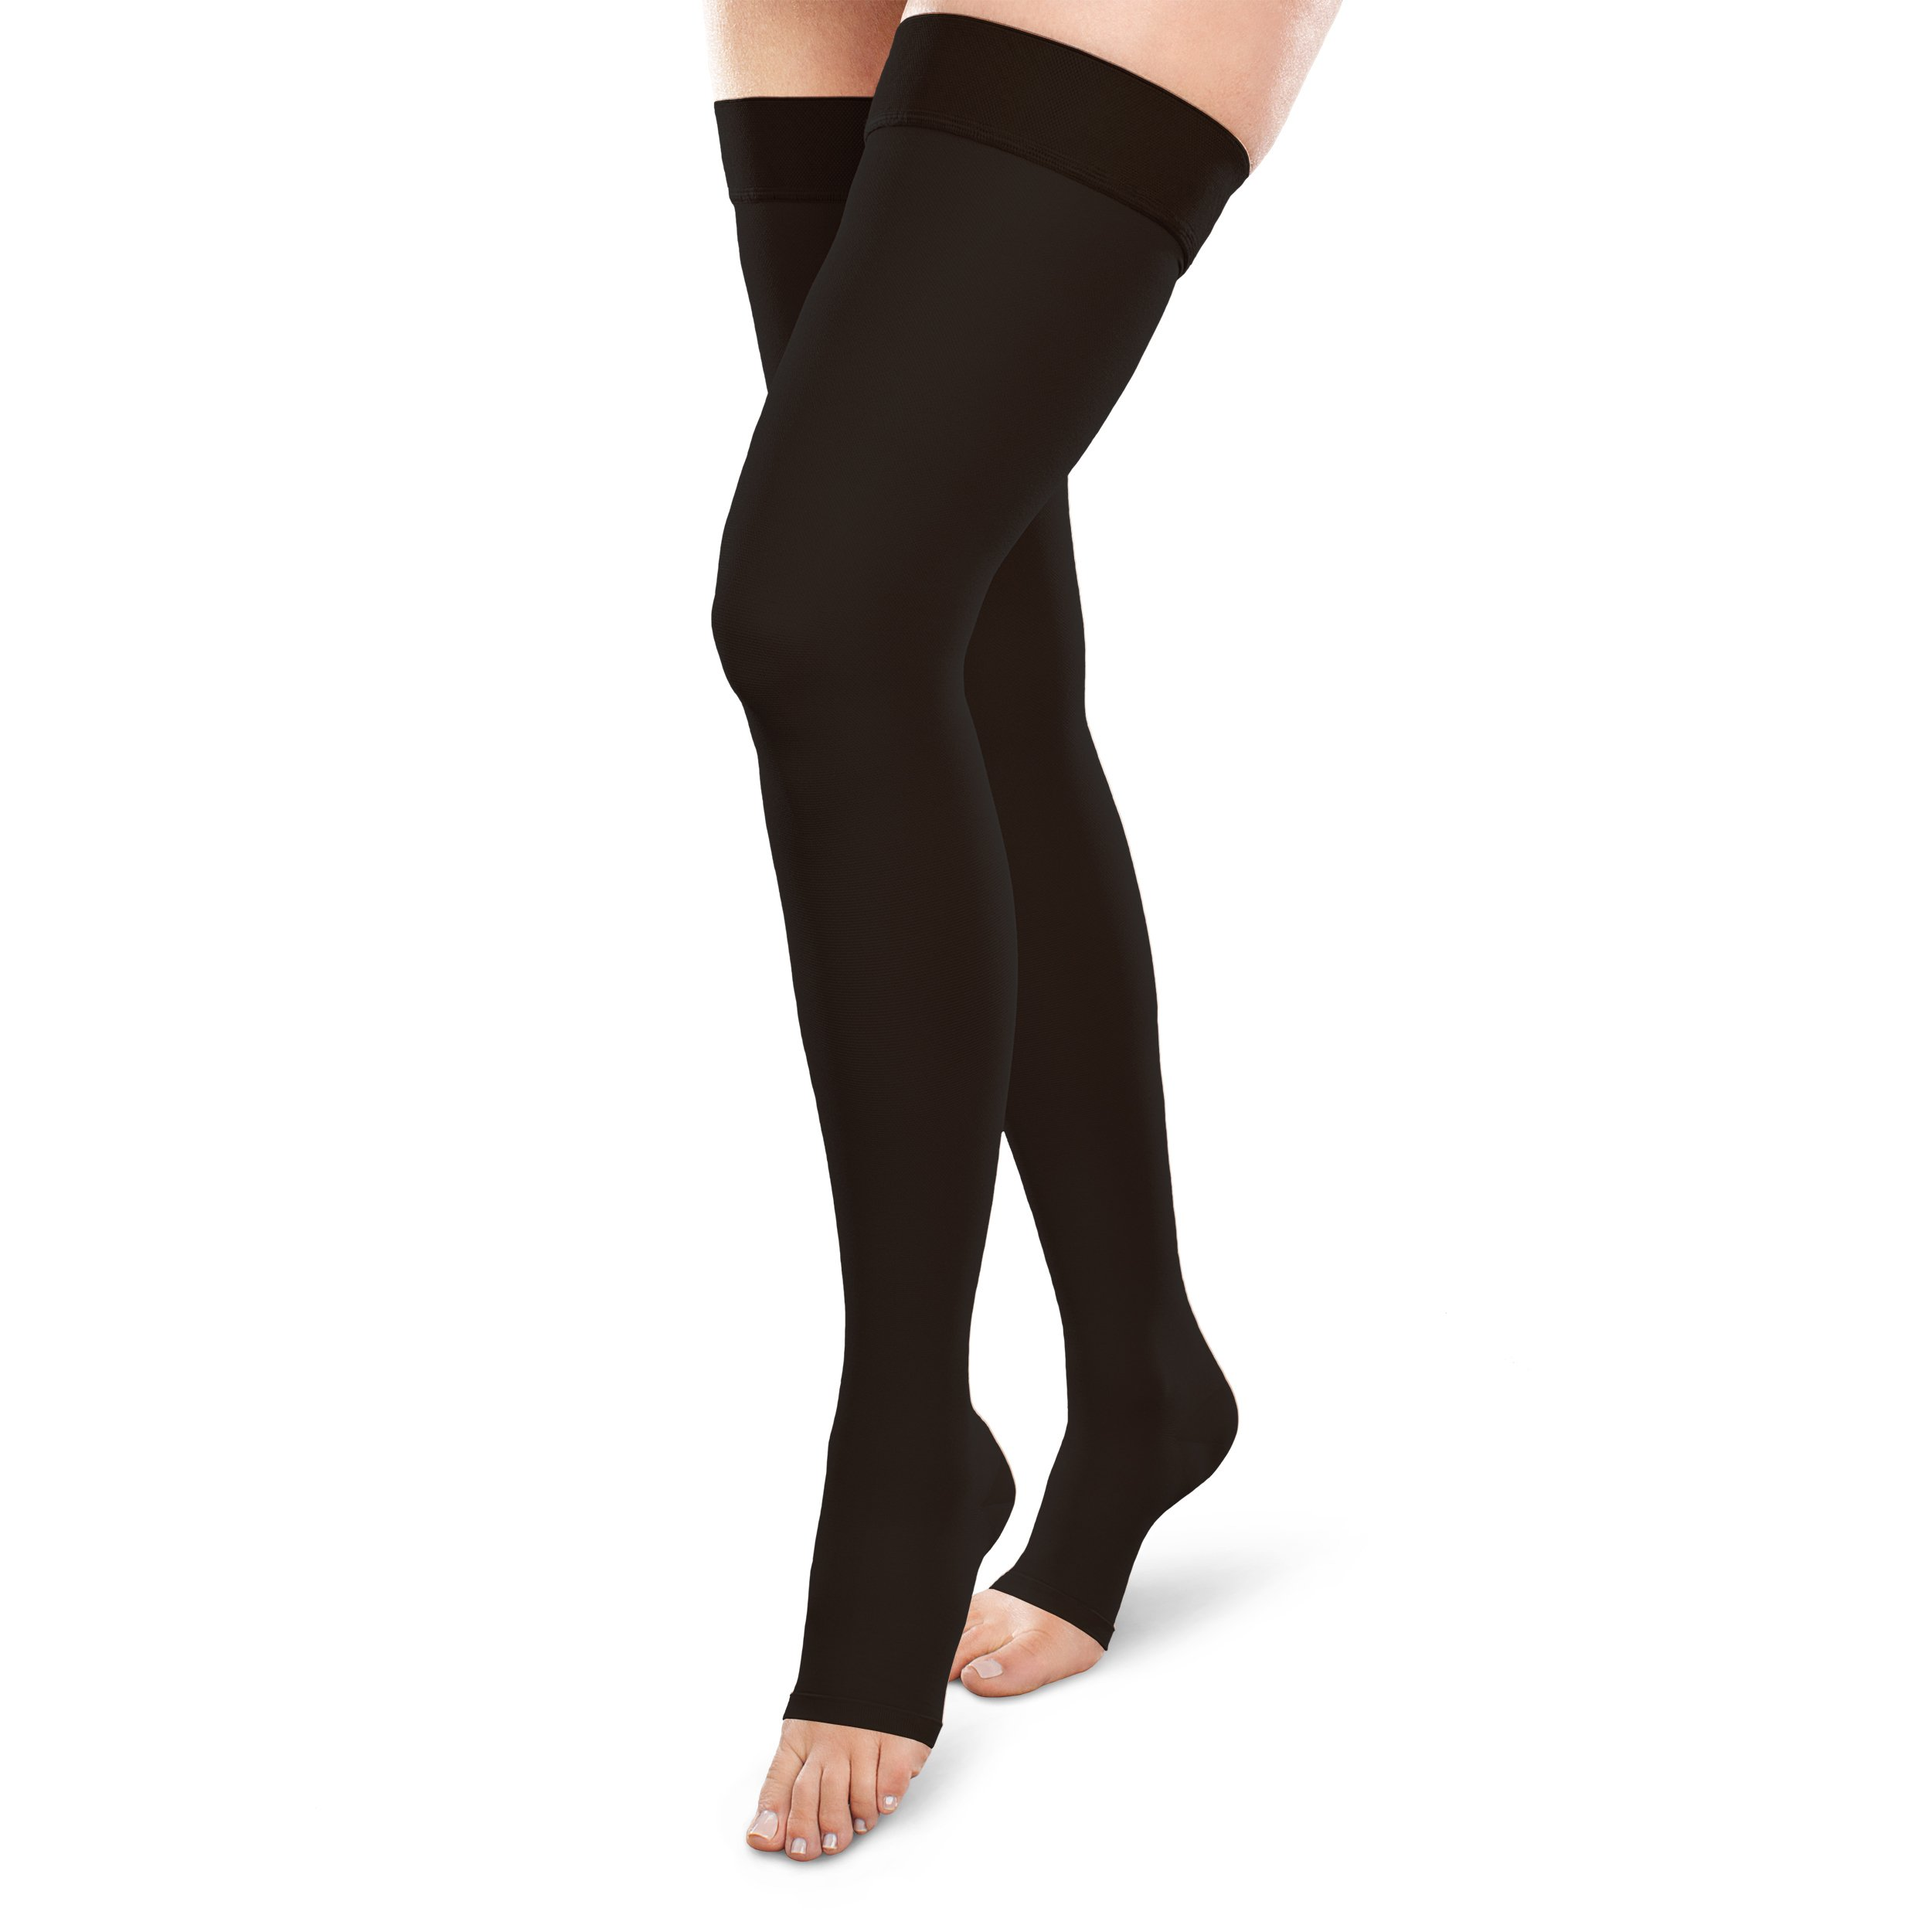 Therafirm Opaque Open-Toe Thigh Highs - 30-40mmHg Firm Compression Stockings (Black, Small Long)